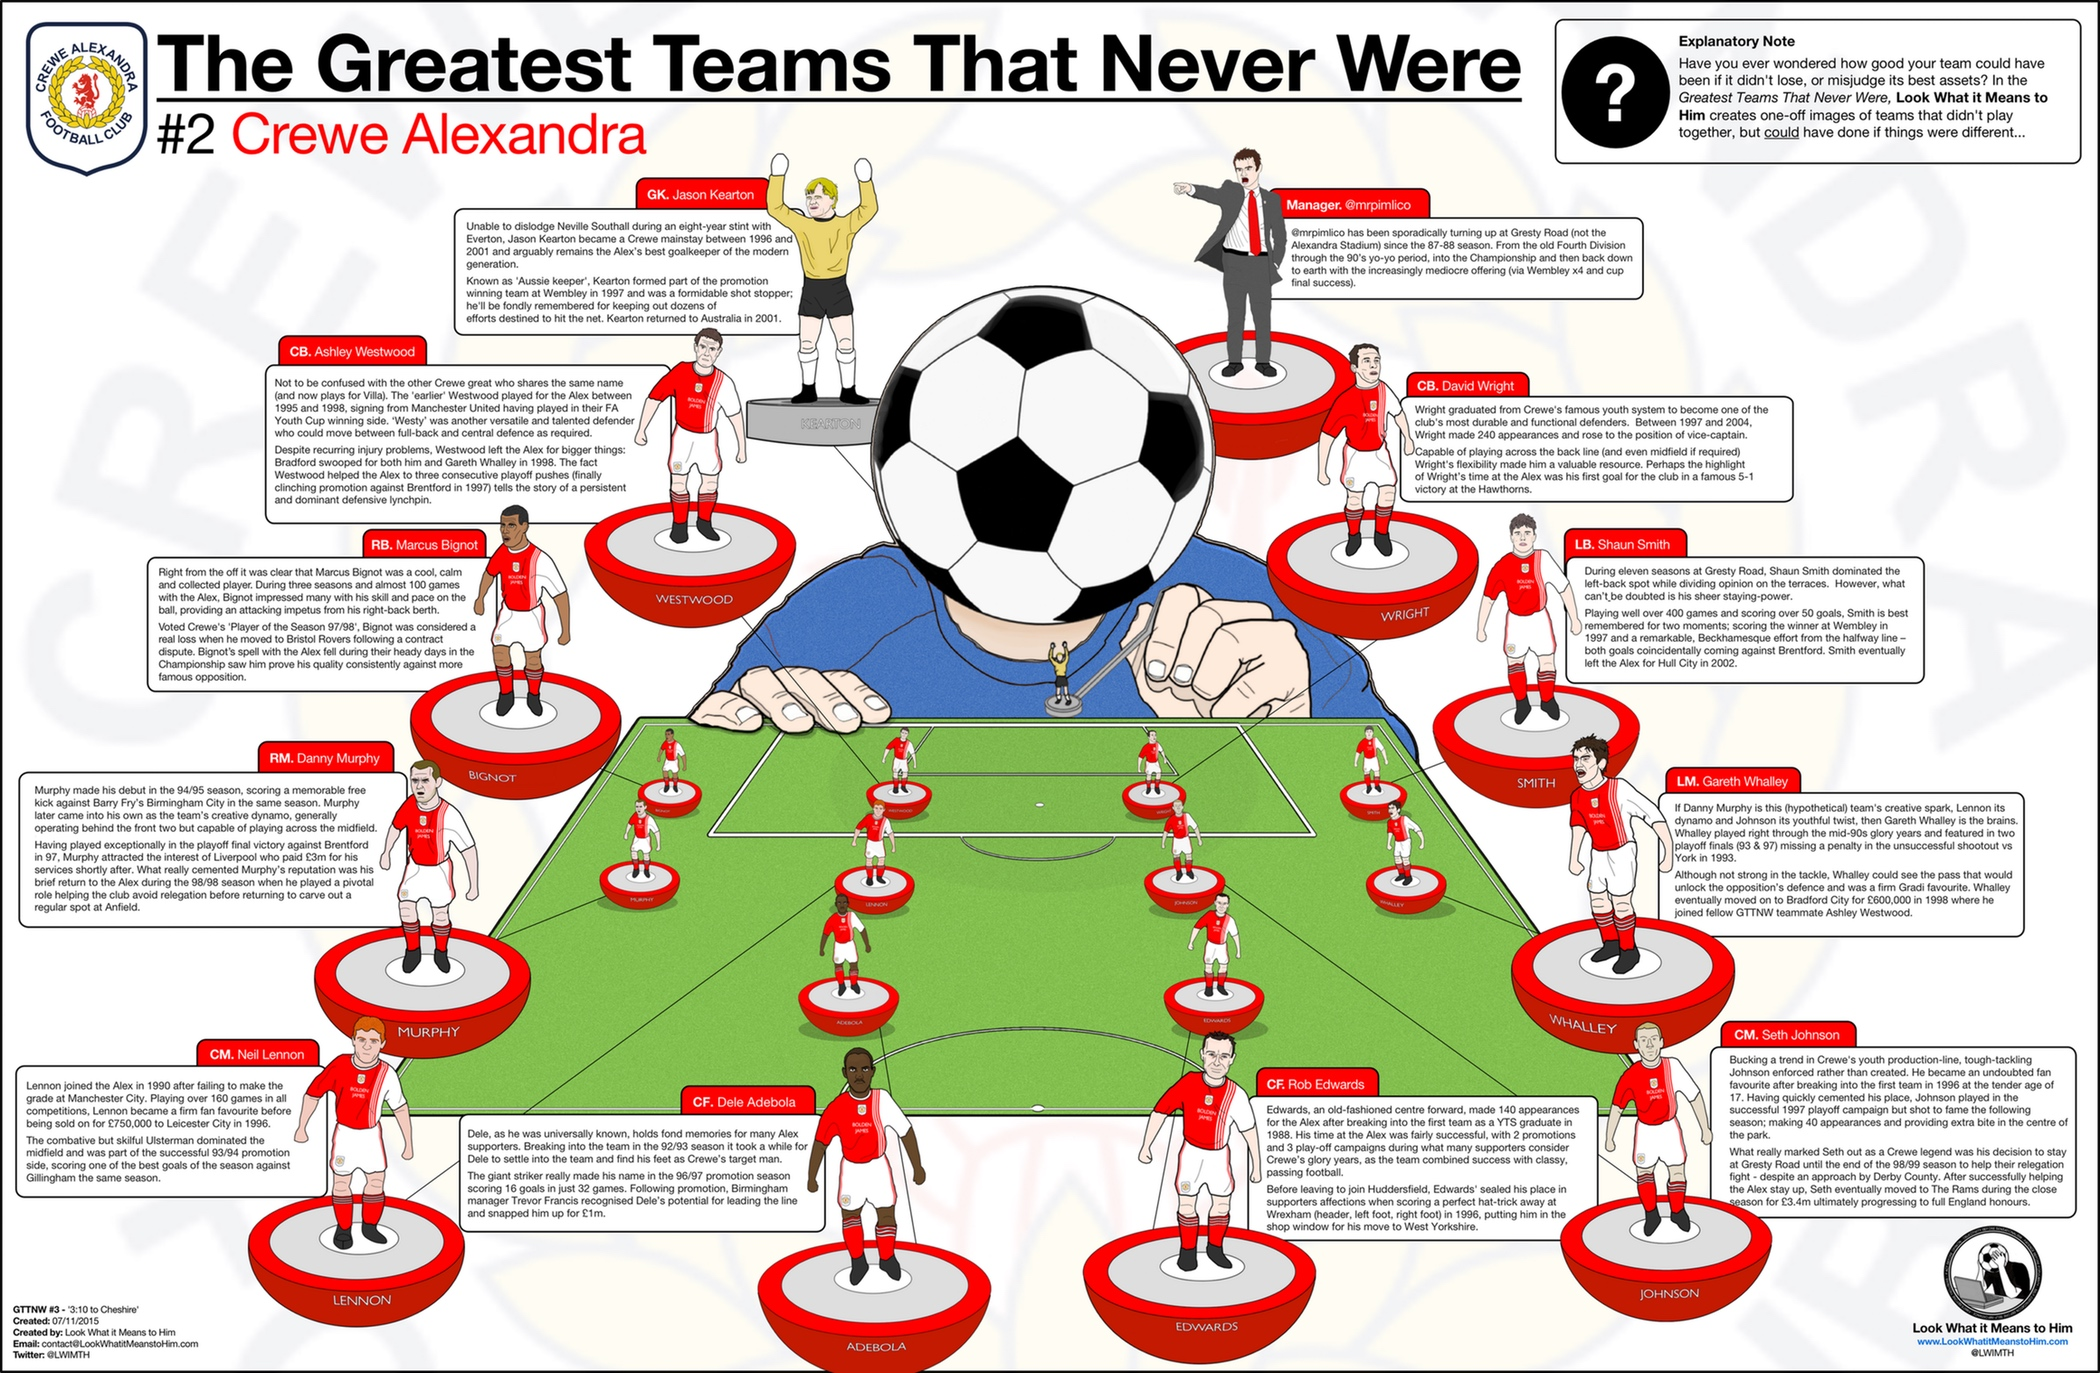 The Greatest Teams That Never Were: Crewe Alexandra